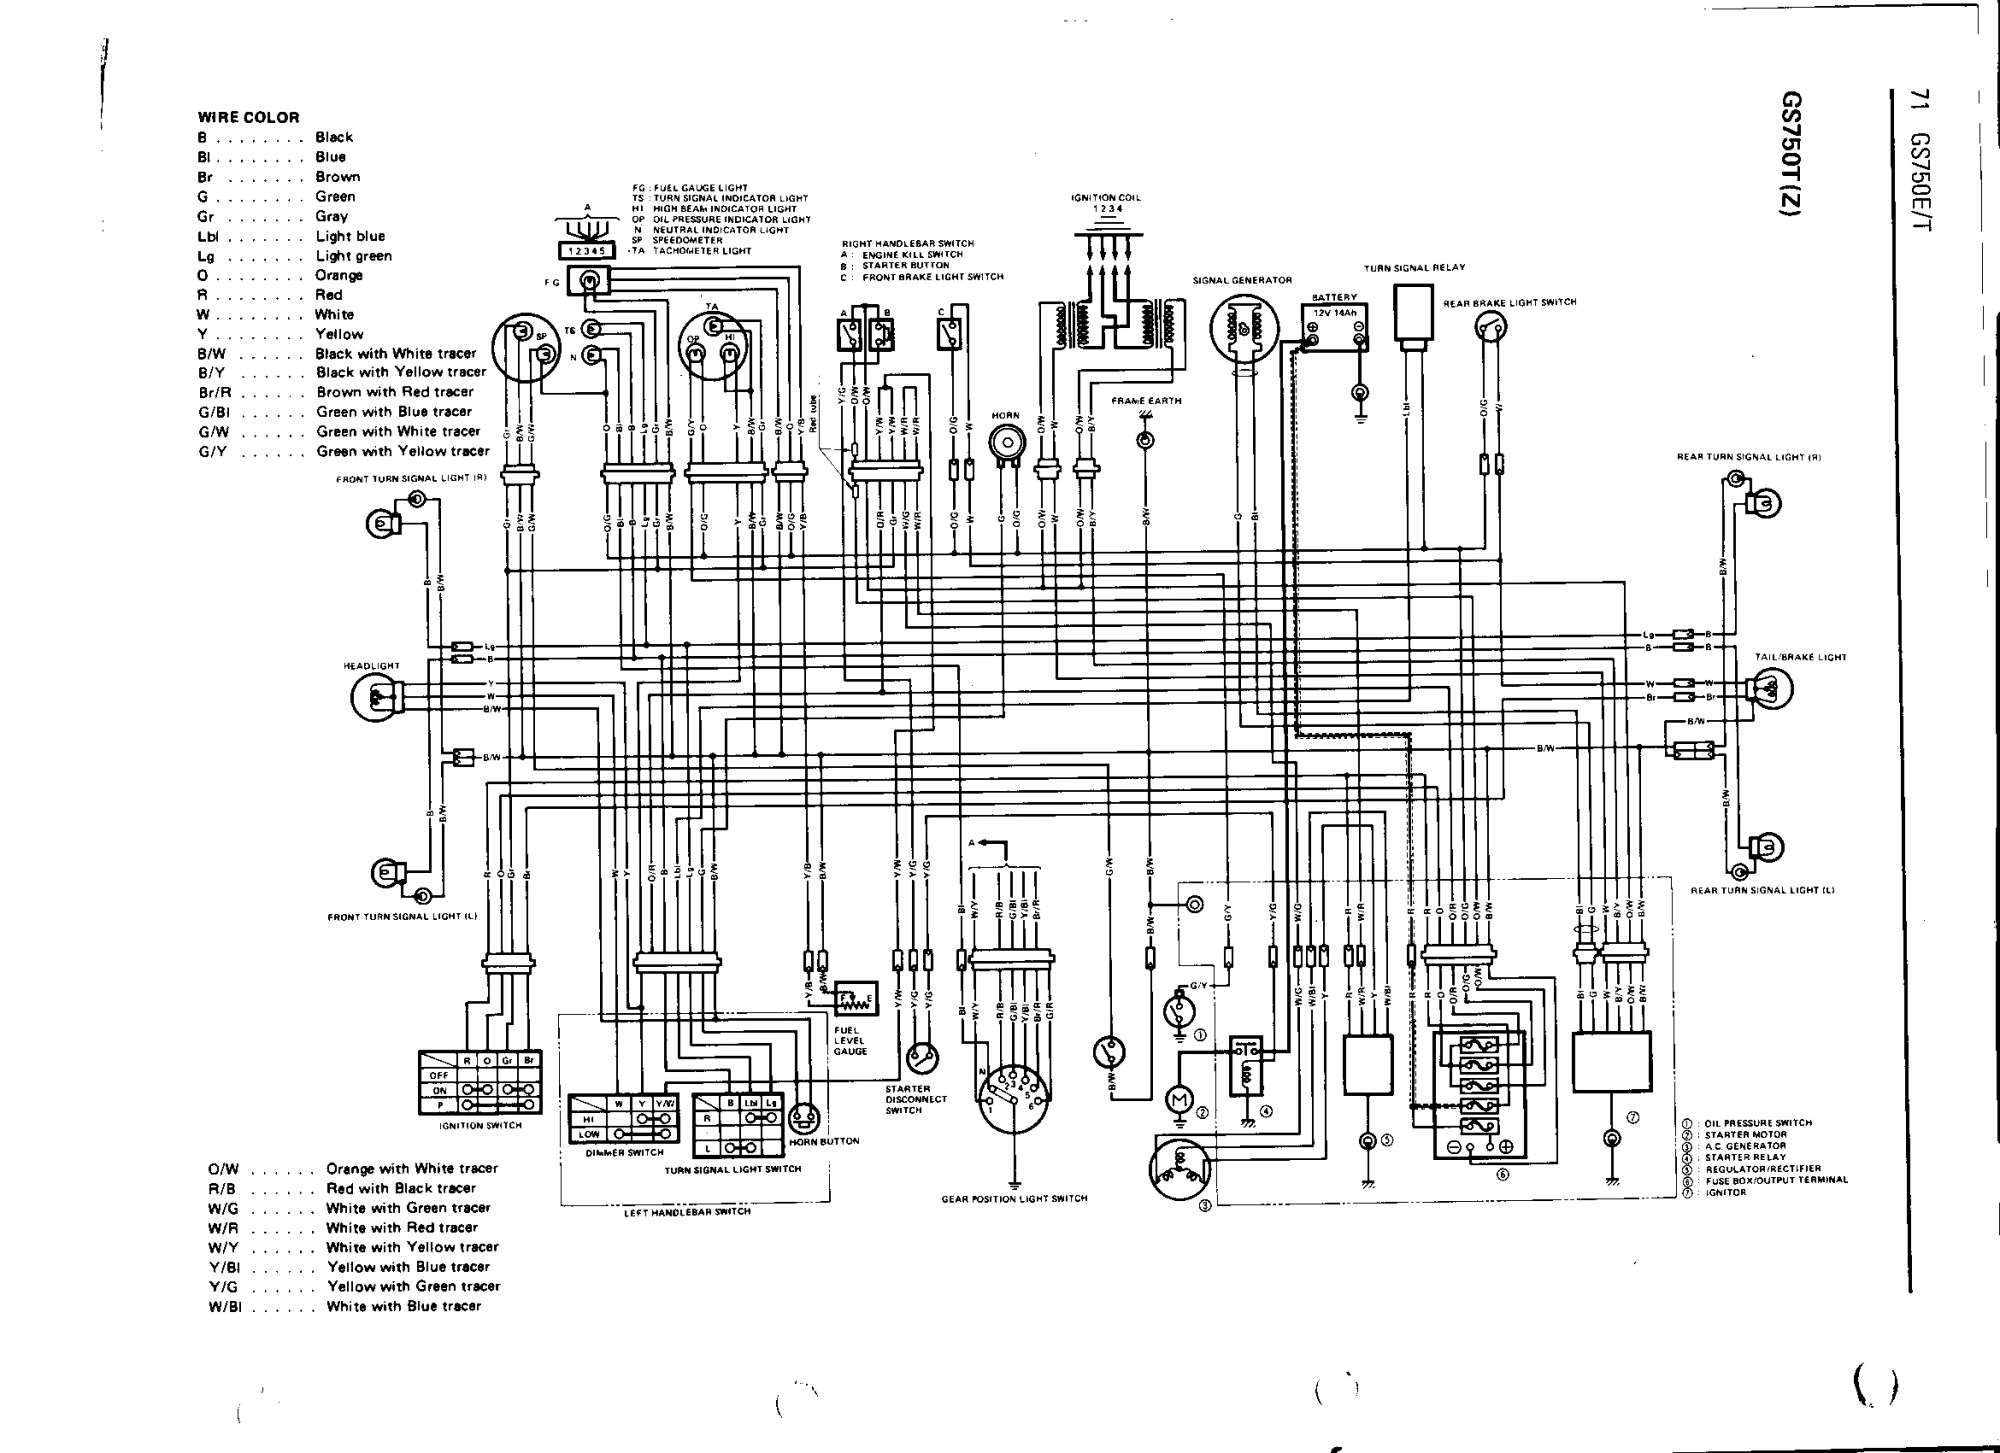 hight resolution of gs850gn 79 wiring diagram color gs850gn 79 wiring diagram color